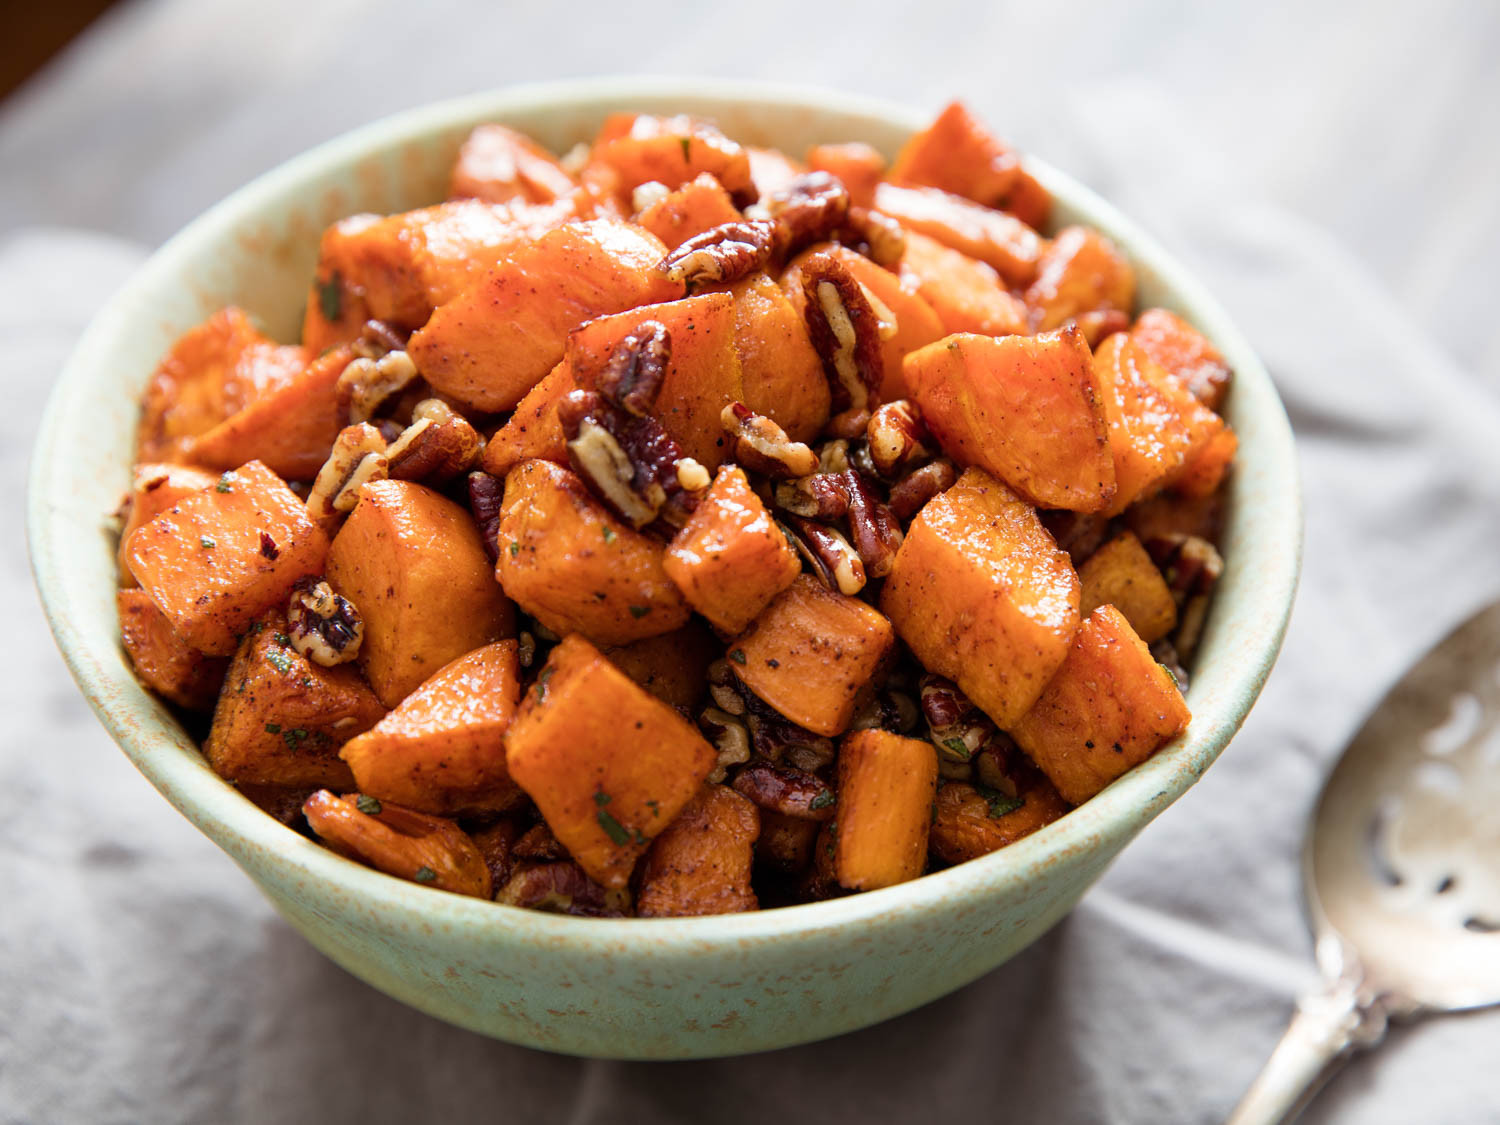 Thanksgiving Potatoes Recipe  14 Sweet Potato Recipes for Thanksgiving That Are Just